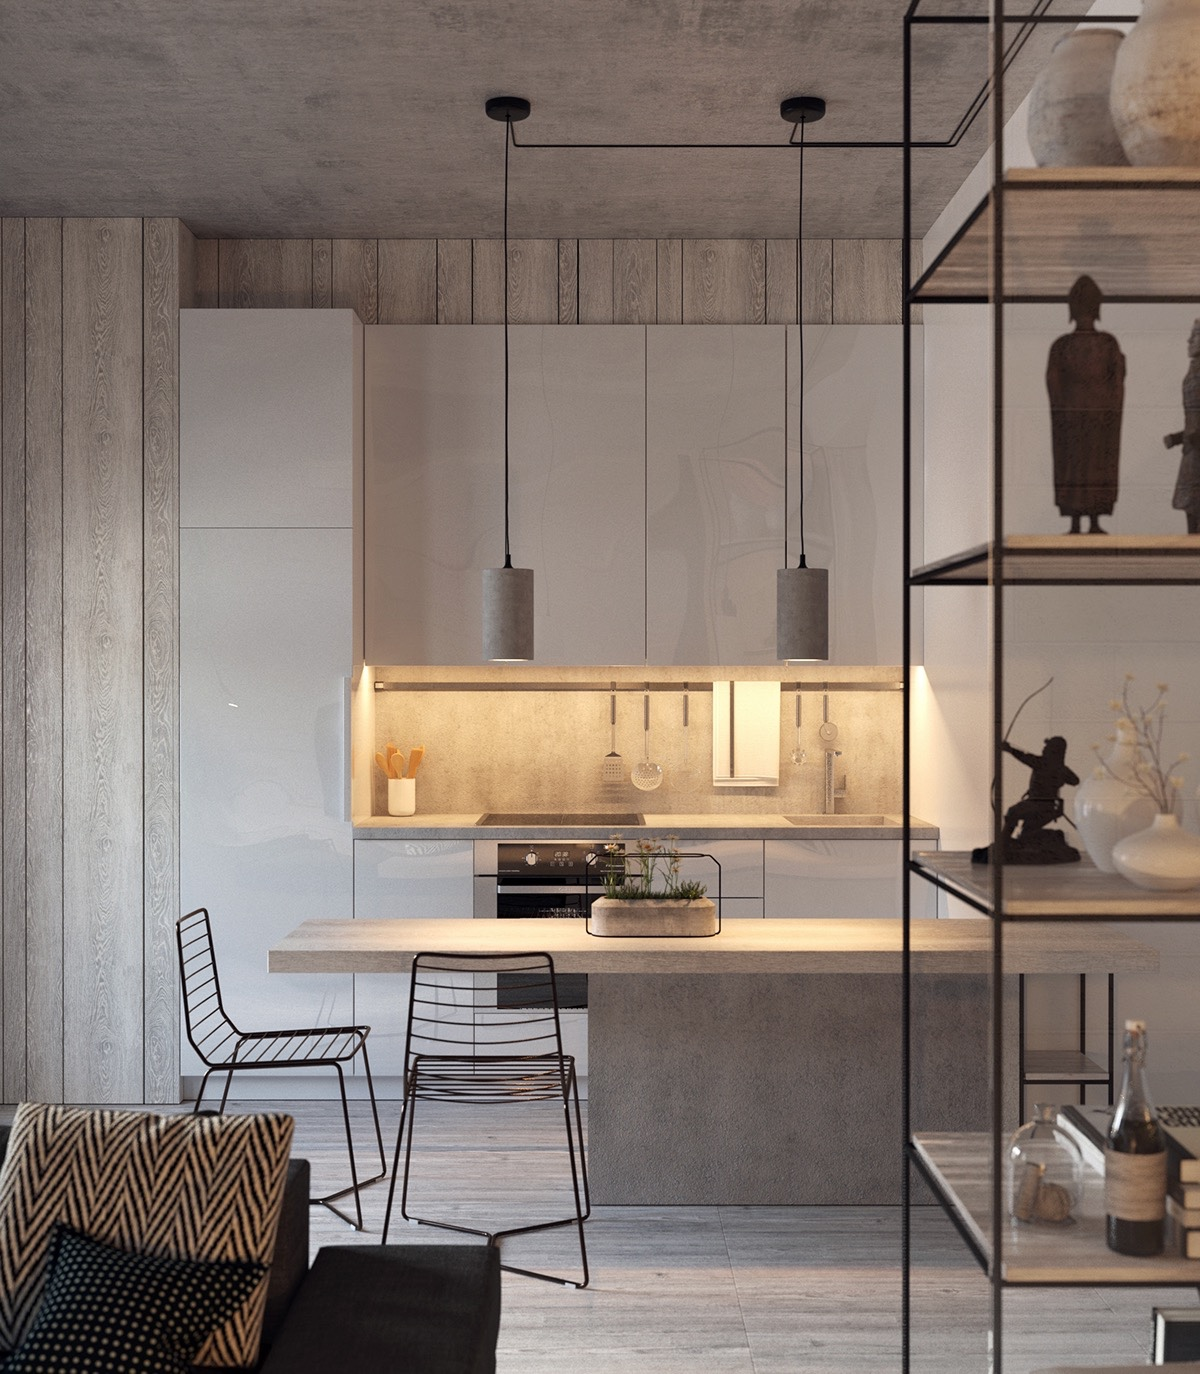 50 Gorgeous Galley Kitchens And Tips You Can Use From Them images 21